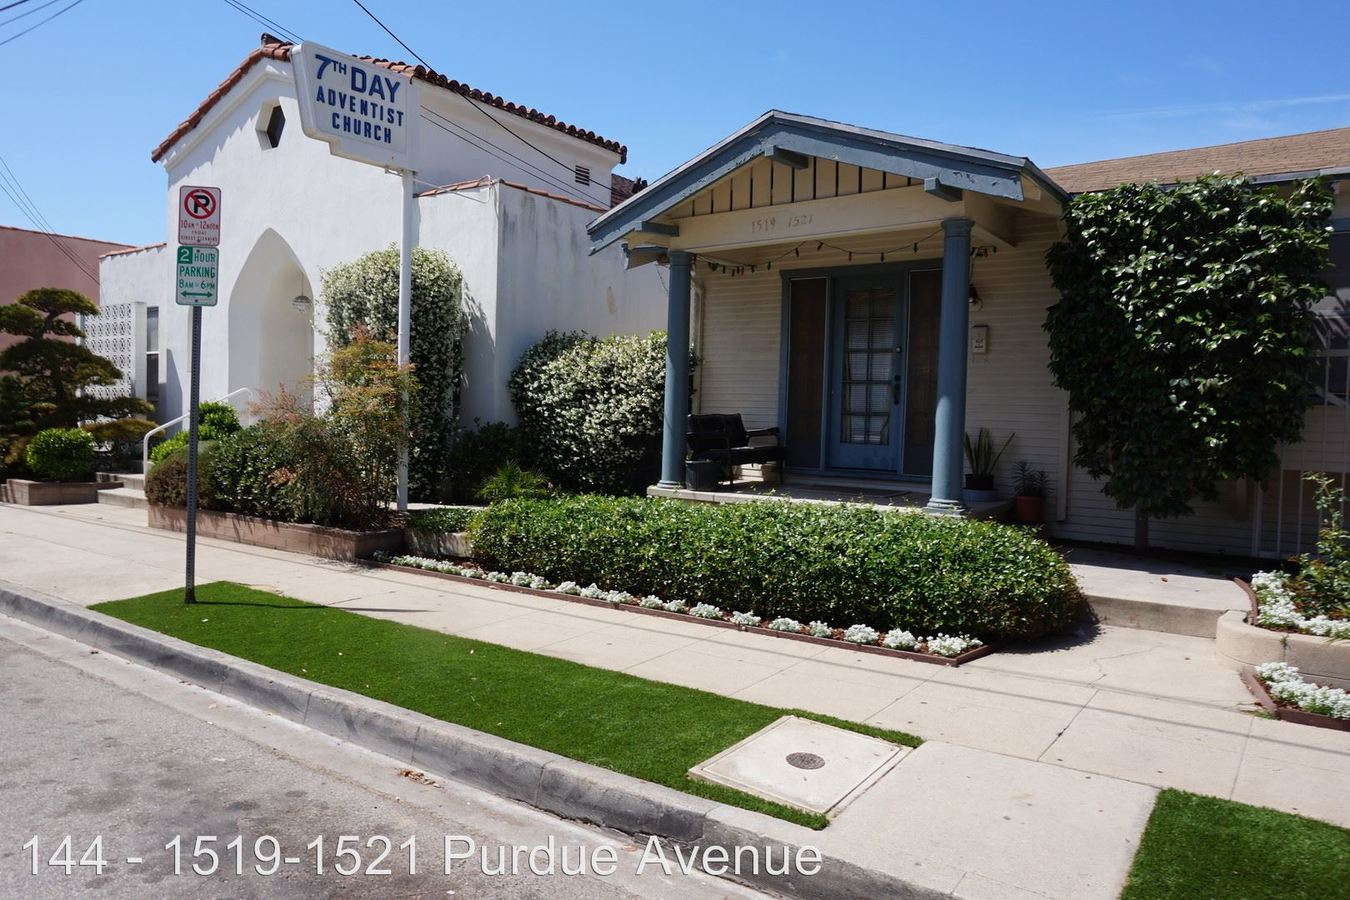 1 Bedroom 1 Bathroom Apartment for rent at 1519-1521 Purdue Ave. in Los Angeles, CA